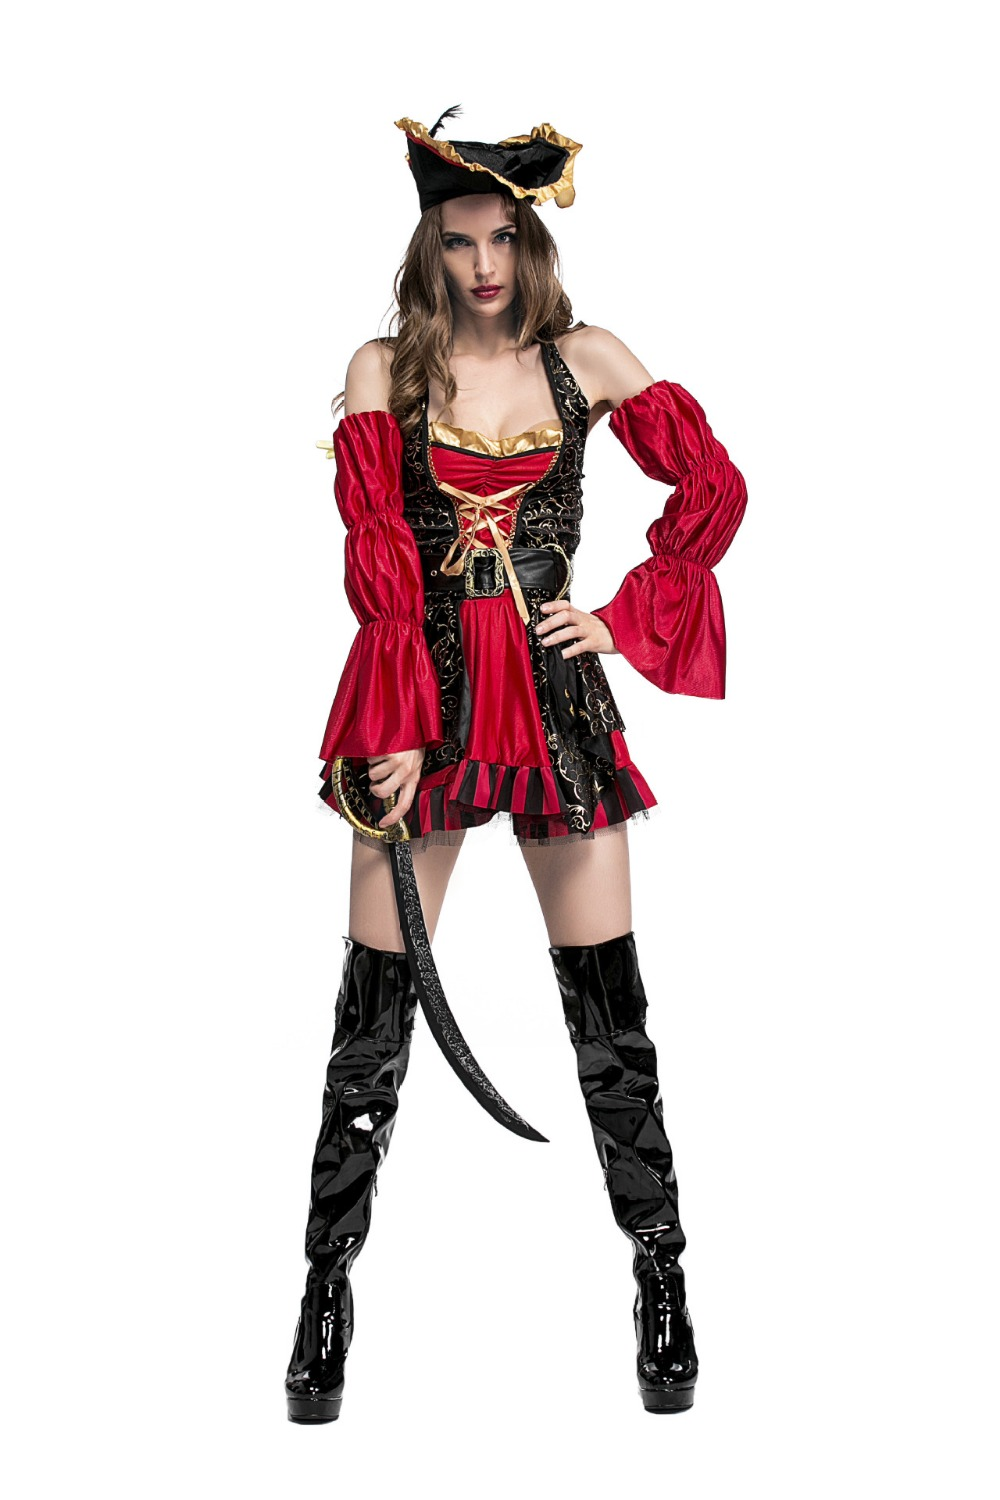 Sexy Ladies Pirate Fancy Dress Adult Halloween Costume Cosplay Skirts Party Outfits Cloth